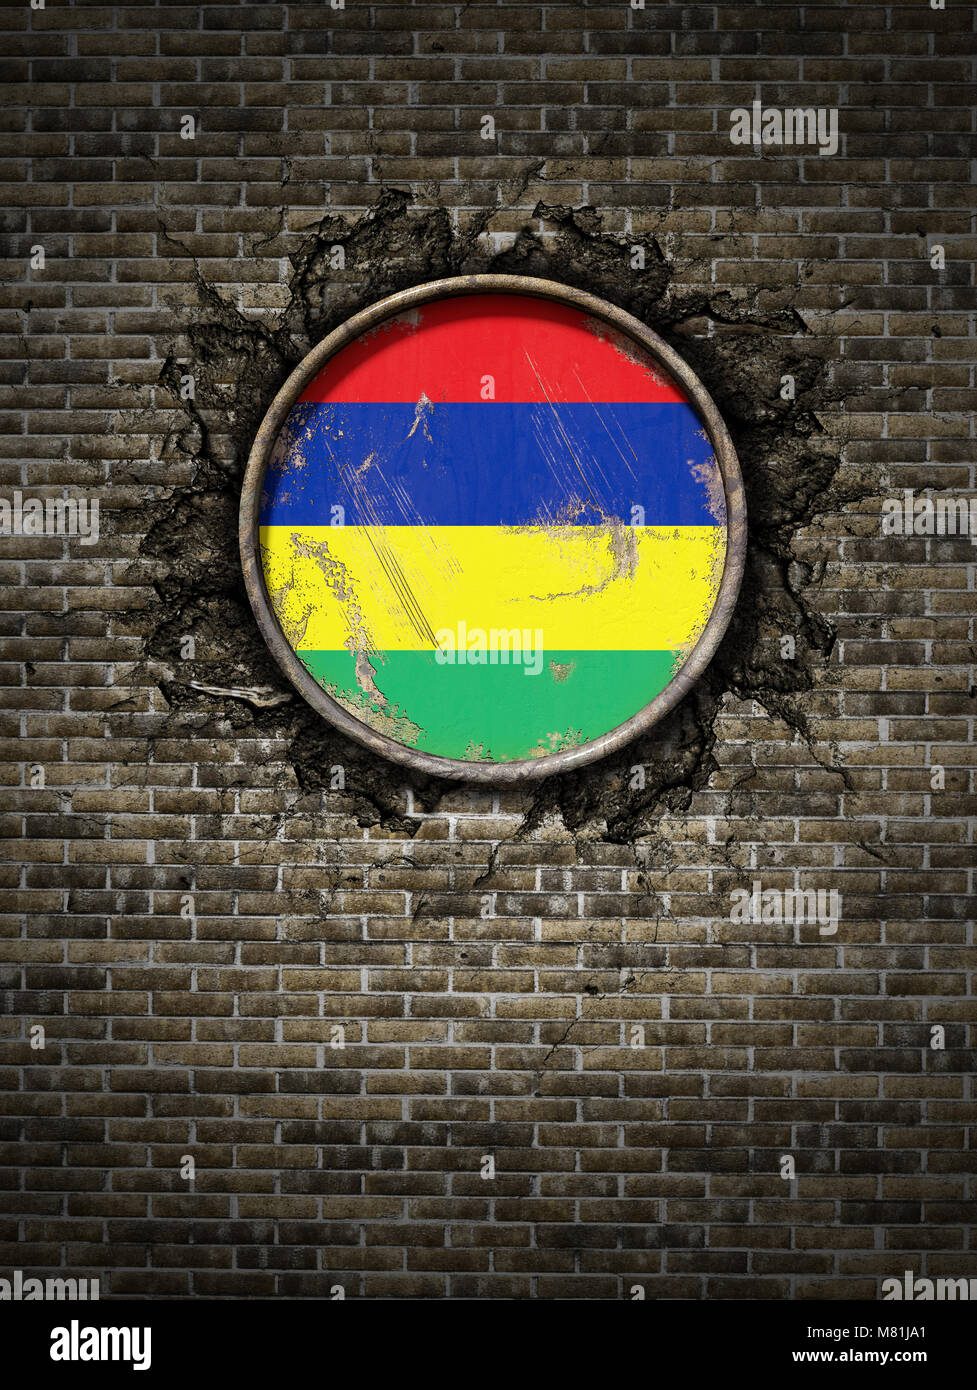 3d rendering of a Republic of Mauritius flag over a rusty metallic plate embedded on an old brick wall - Stock Image